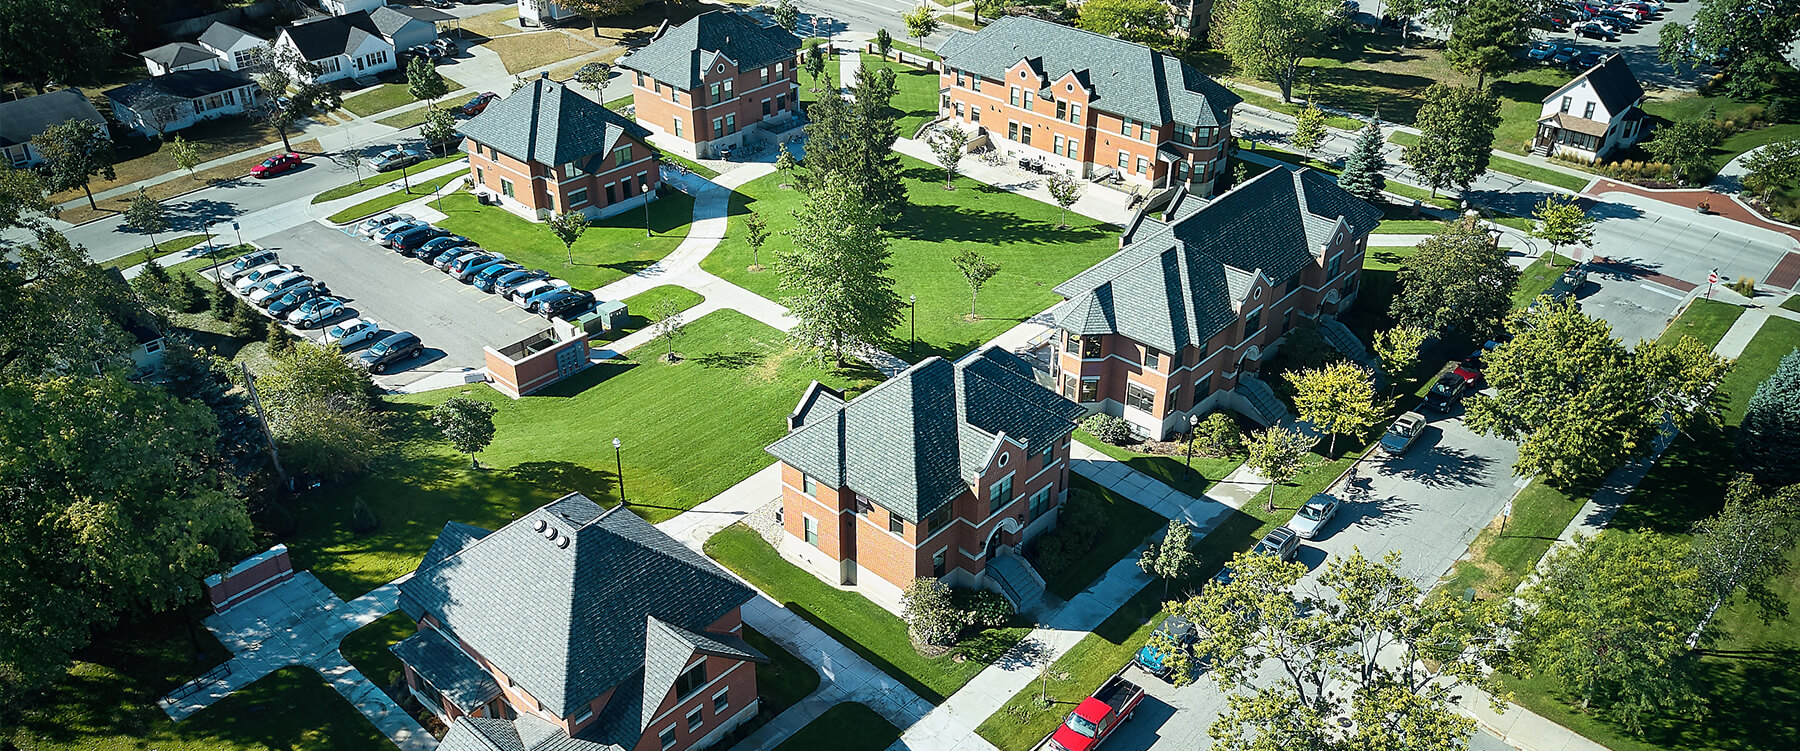 Hope College Student Housing aerial